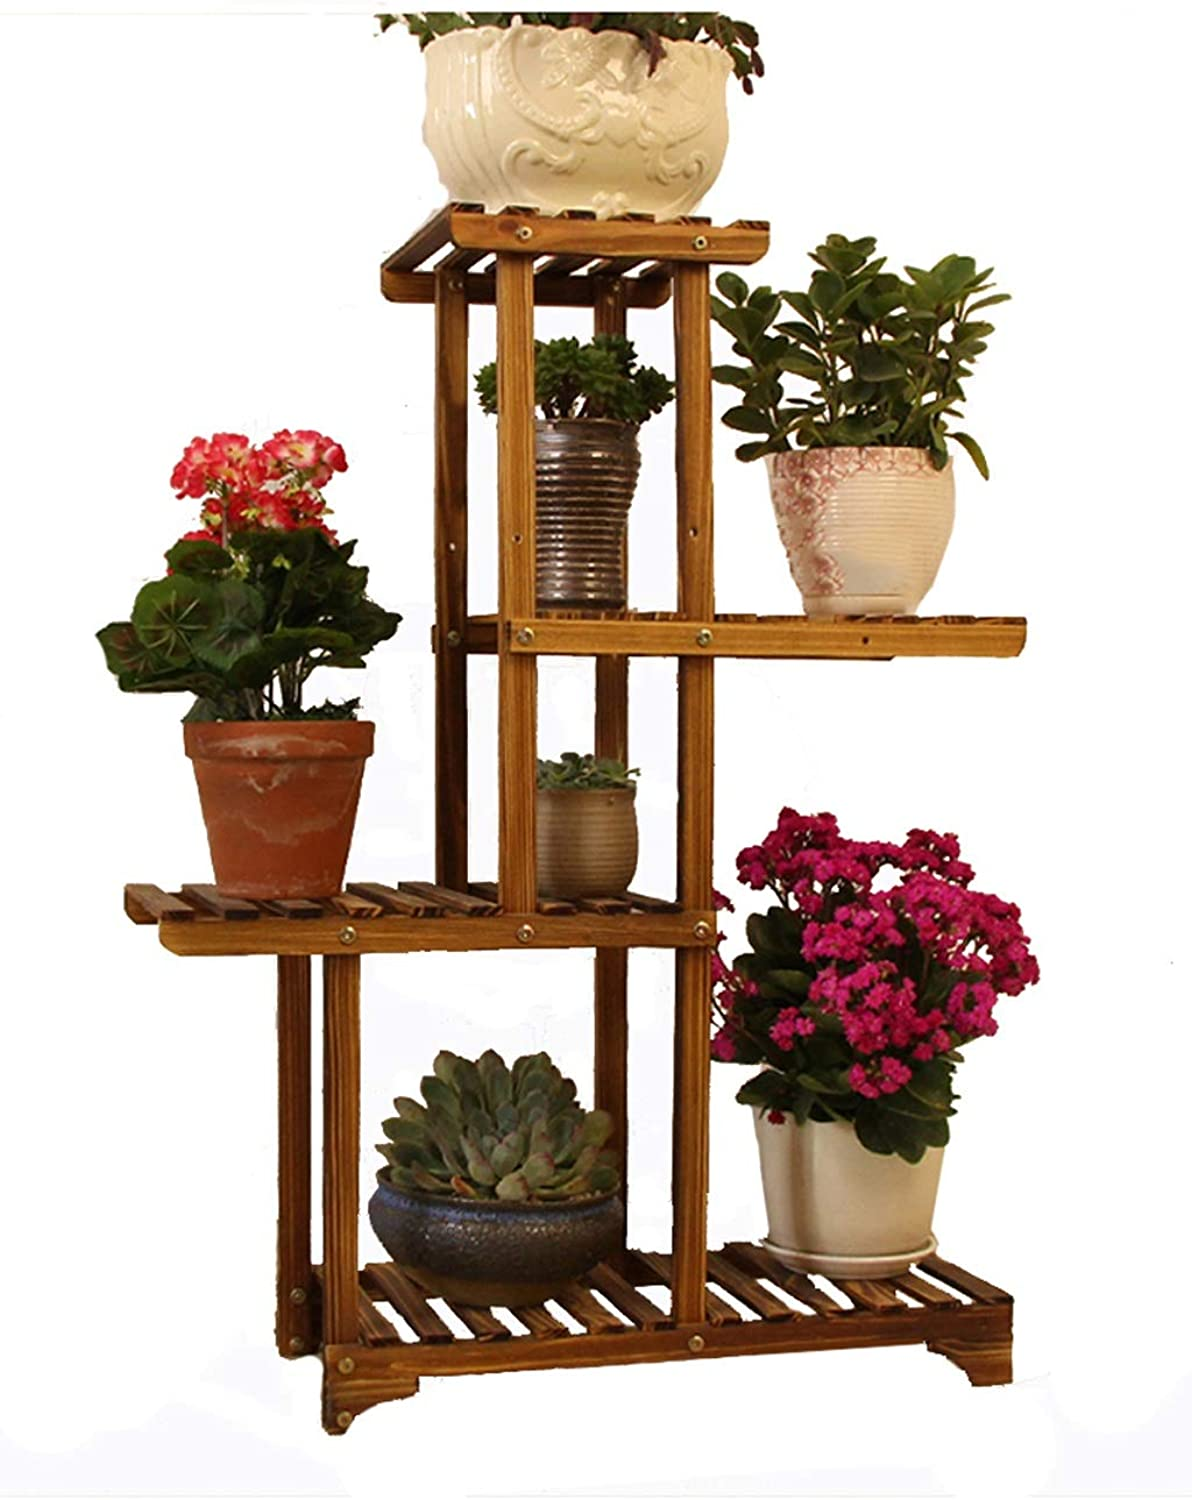 Flower Frame Solid Wood Multi-Storey Indoor Multi-Function Living Room Plant Potted Green Plant Balcony 4-Tier 55CM  25CM  87CM